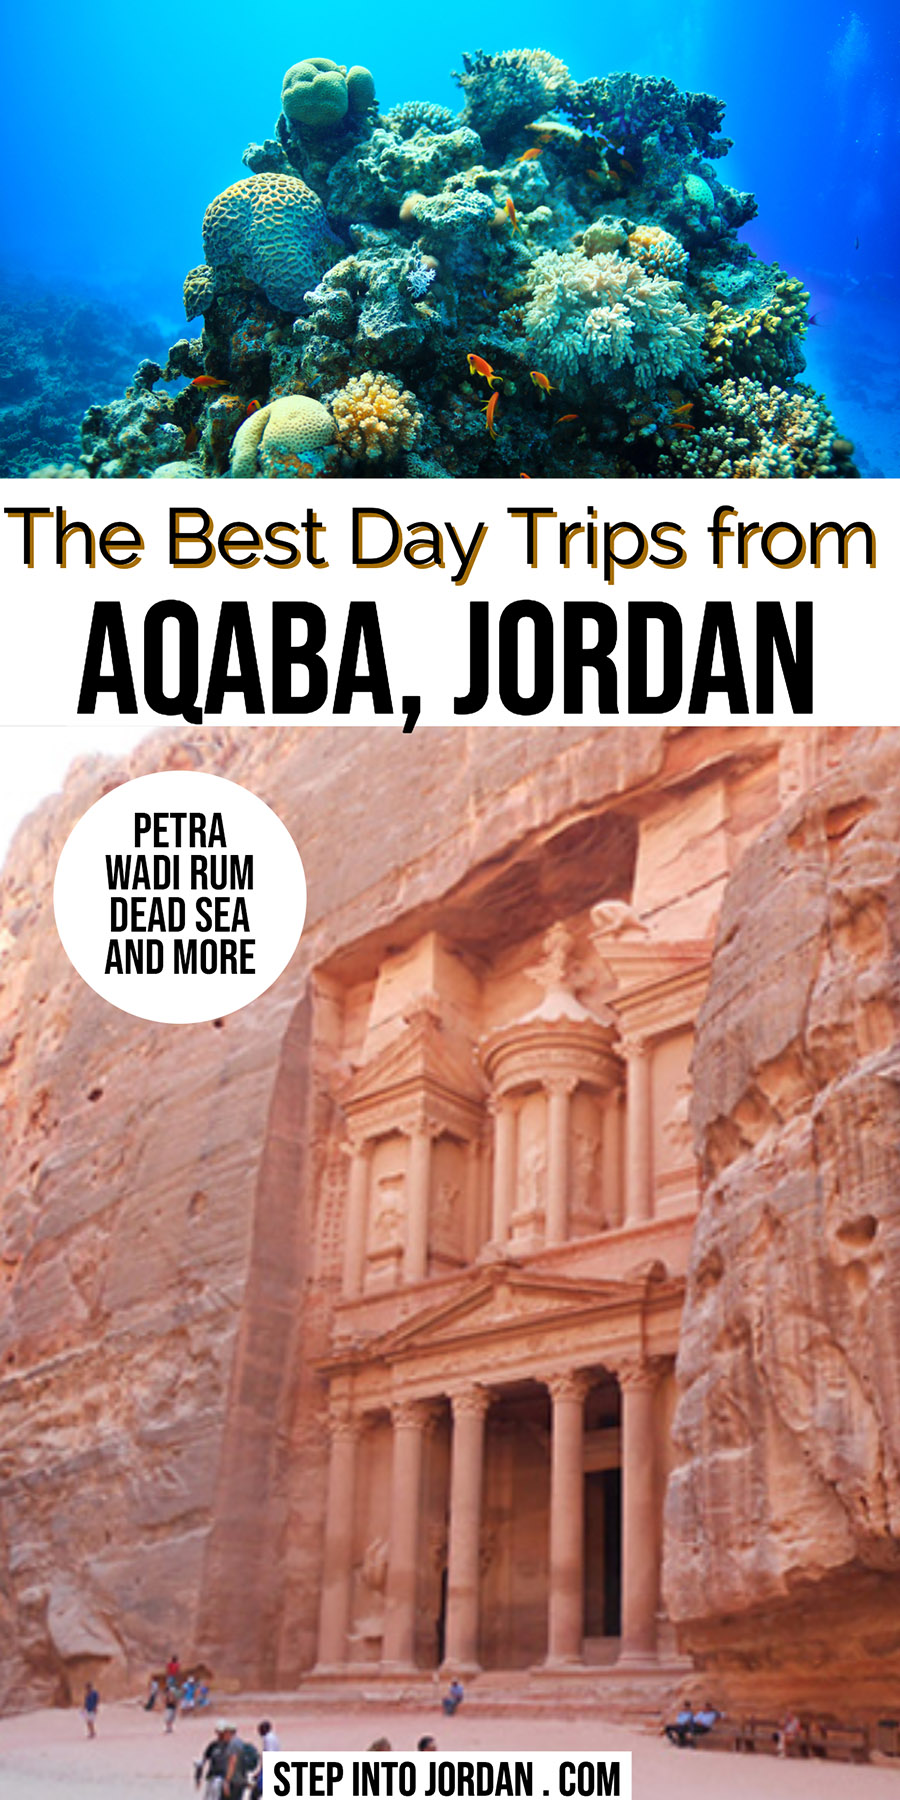 Day Trips from Aqaba including Petra, Wadi Rum, Dead Sea